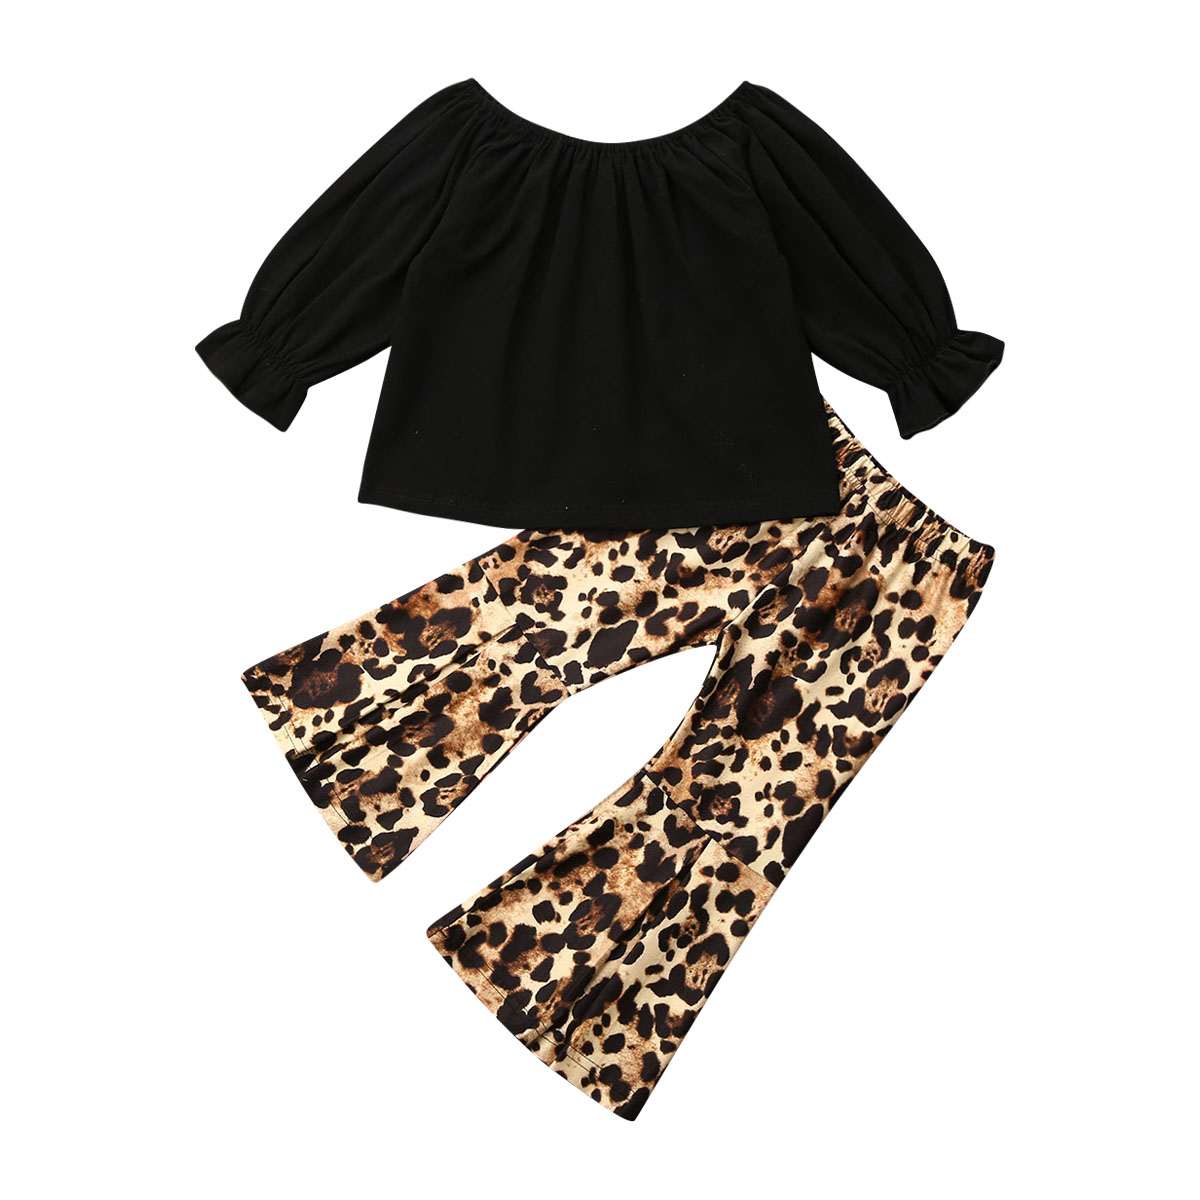 1-6Y Leopard Toddler Baby Kid Baby Girl Clothing Set Long Sleeve Ruffle Tops T-shirt Flared Pants Black Outfit Autumn Spring Set